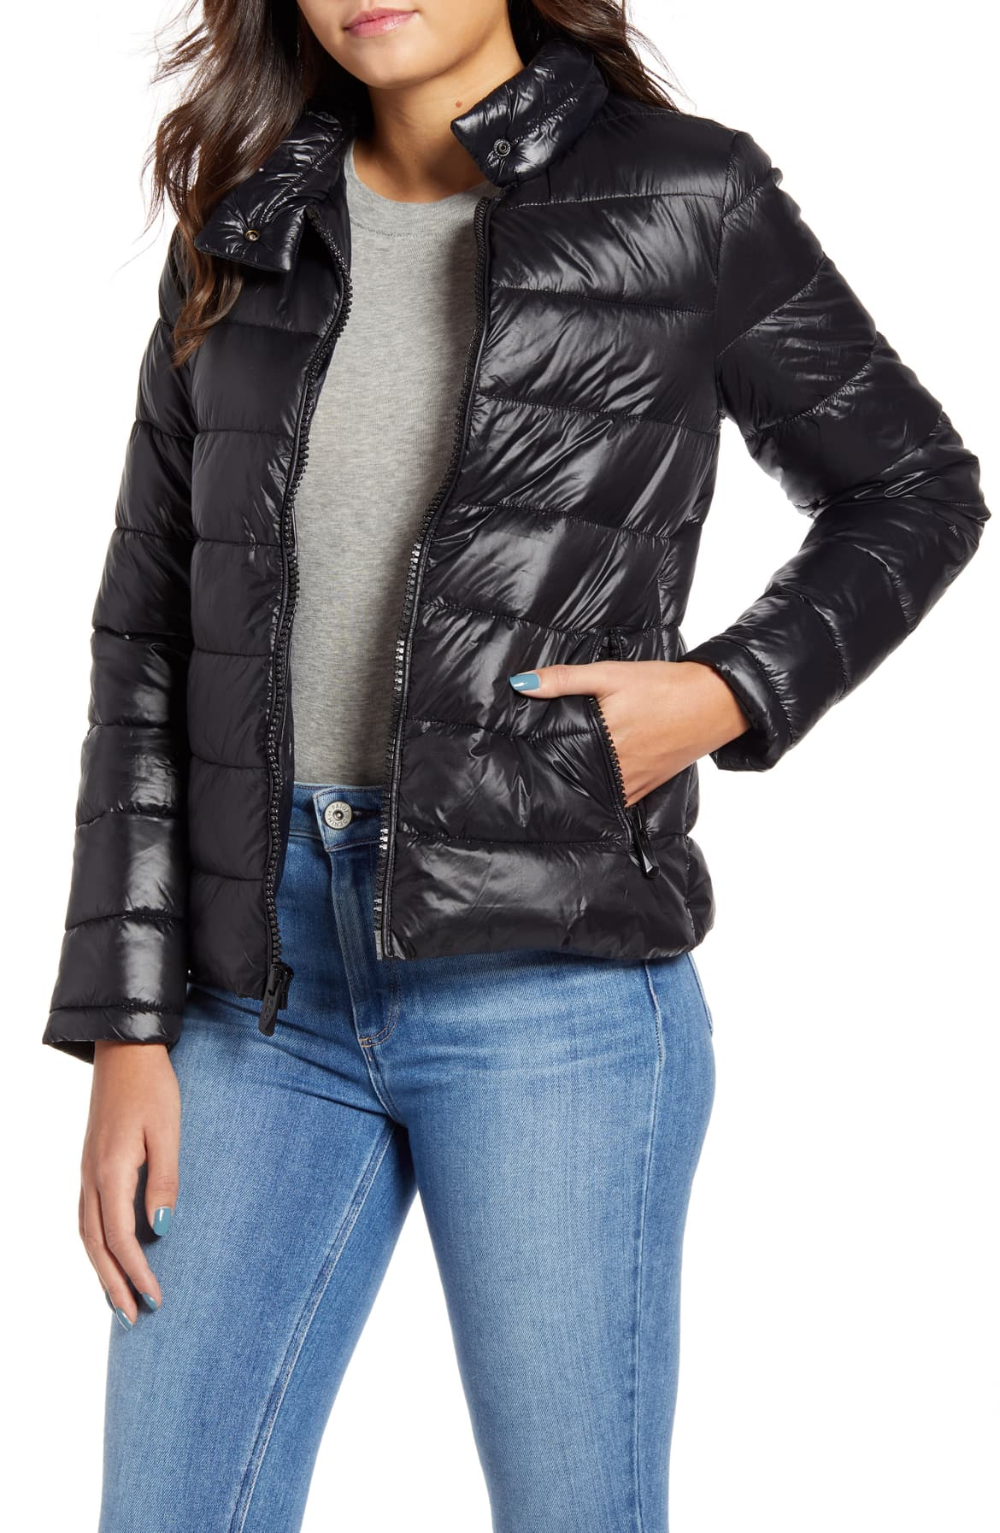 Marc New York Packable Puffer Jacket Nordstrom Marc New York Jackets Puffer Jackets [ 1533 x 1000 Pixel ]